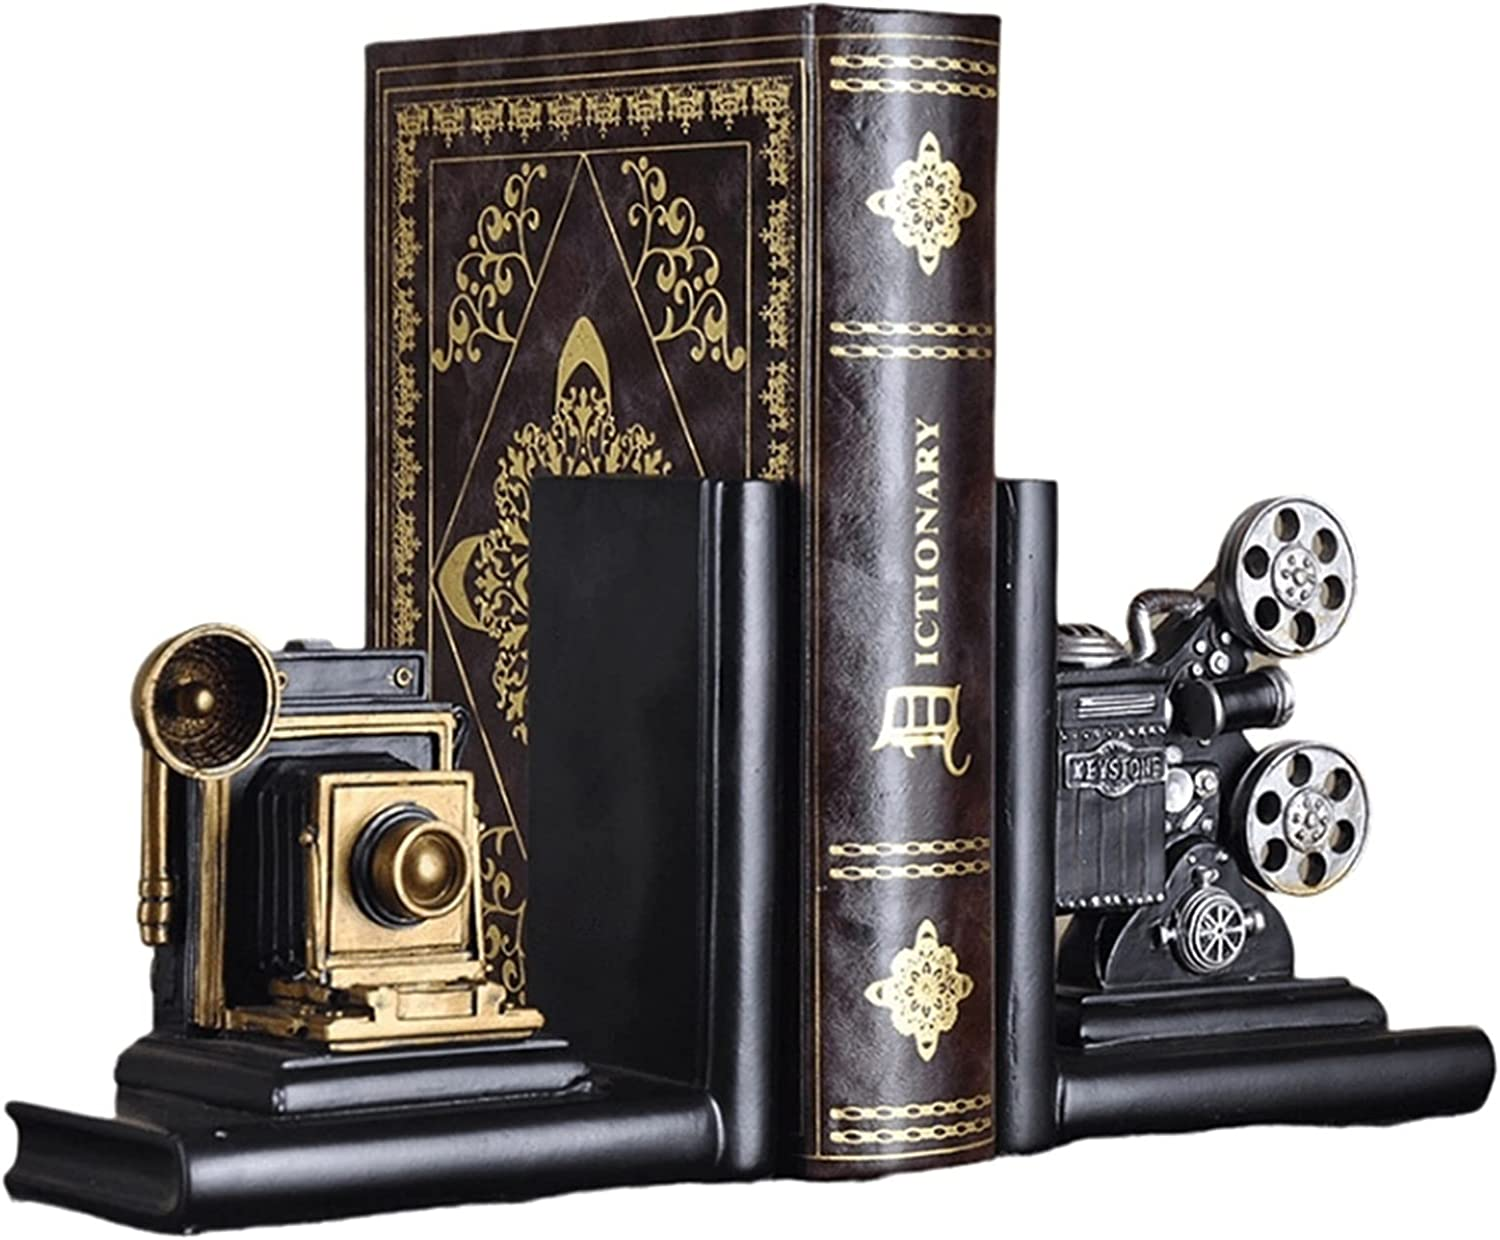 Bombing free shipping ZXNRTU Vintage NEW before selling ☆ Decorative Bookend Fi Retro Movie Camera